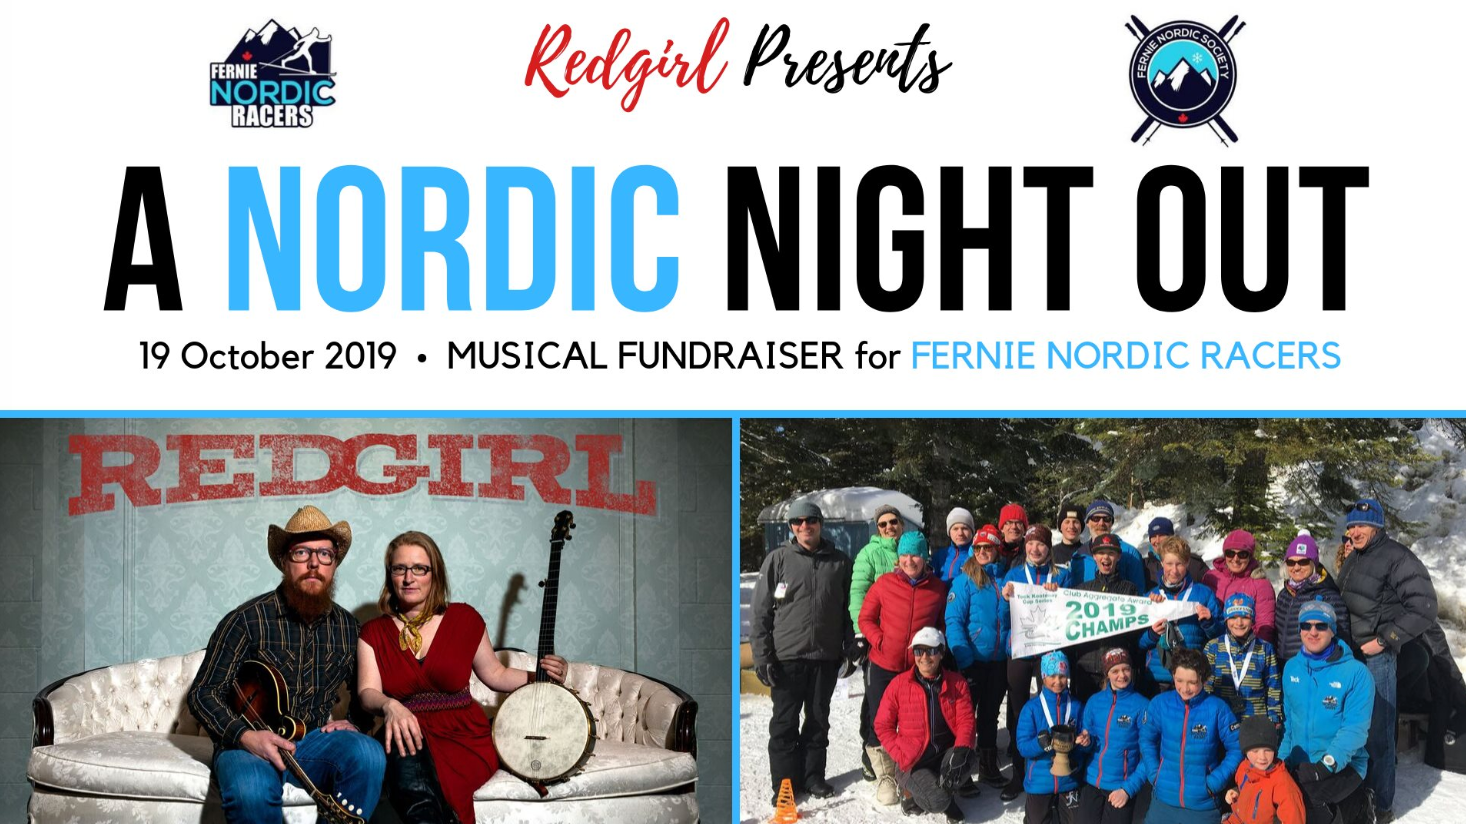 A Nordic Night Out